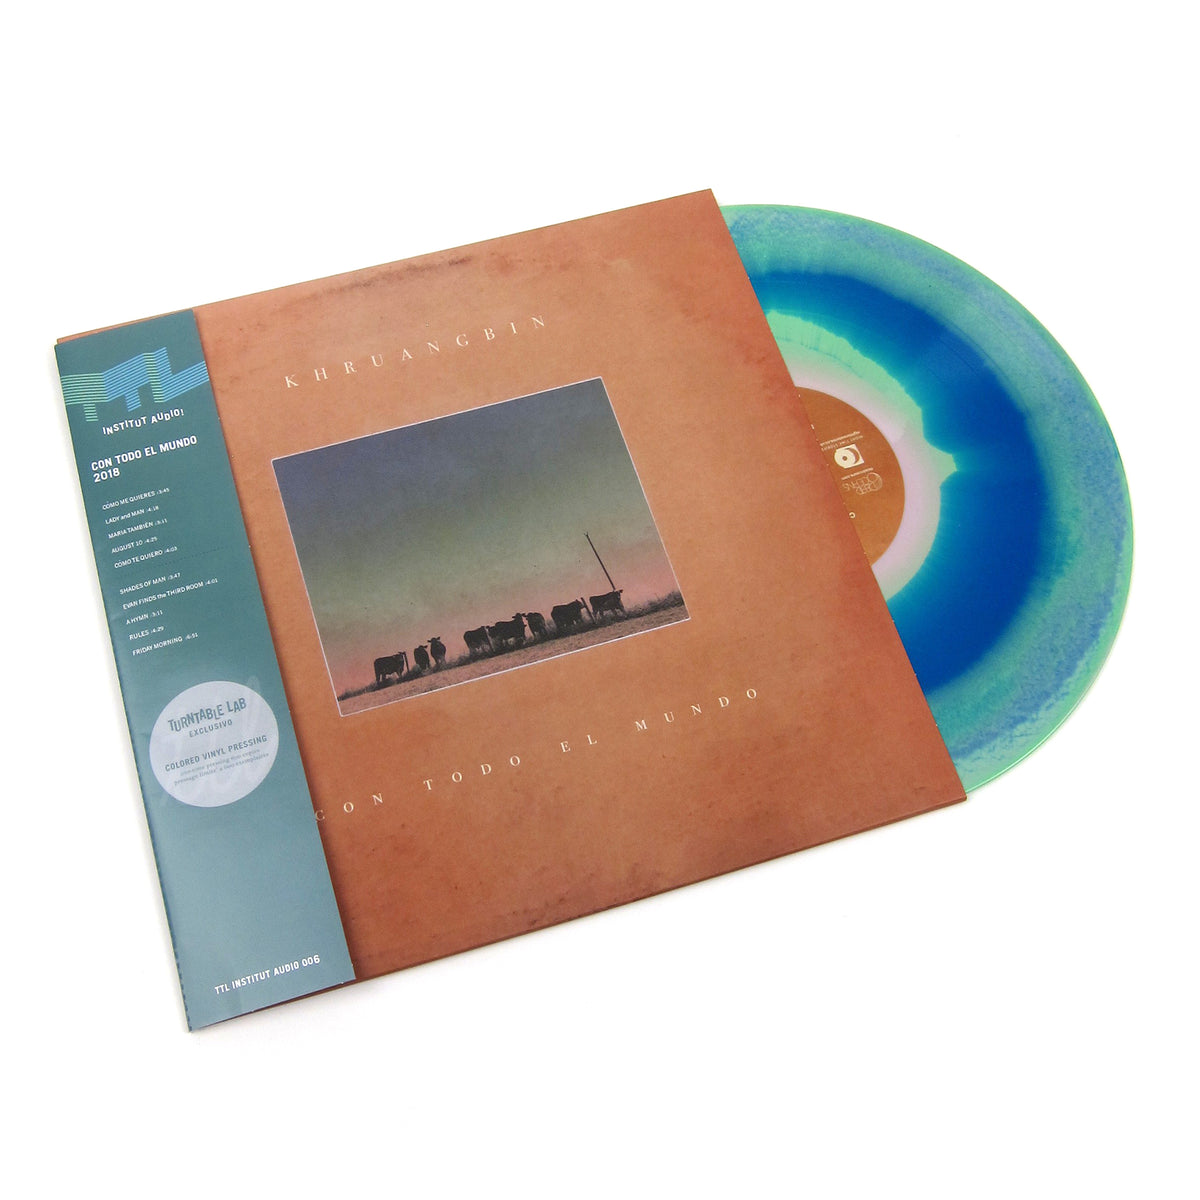 Khruangbin: Con Todo El Mundo (Swirl Colored Vinyl) Vinyl LP - Turntable Lab Exclusive on white